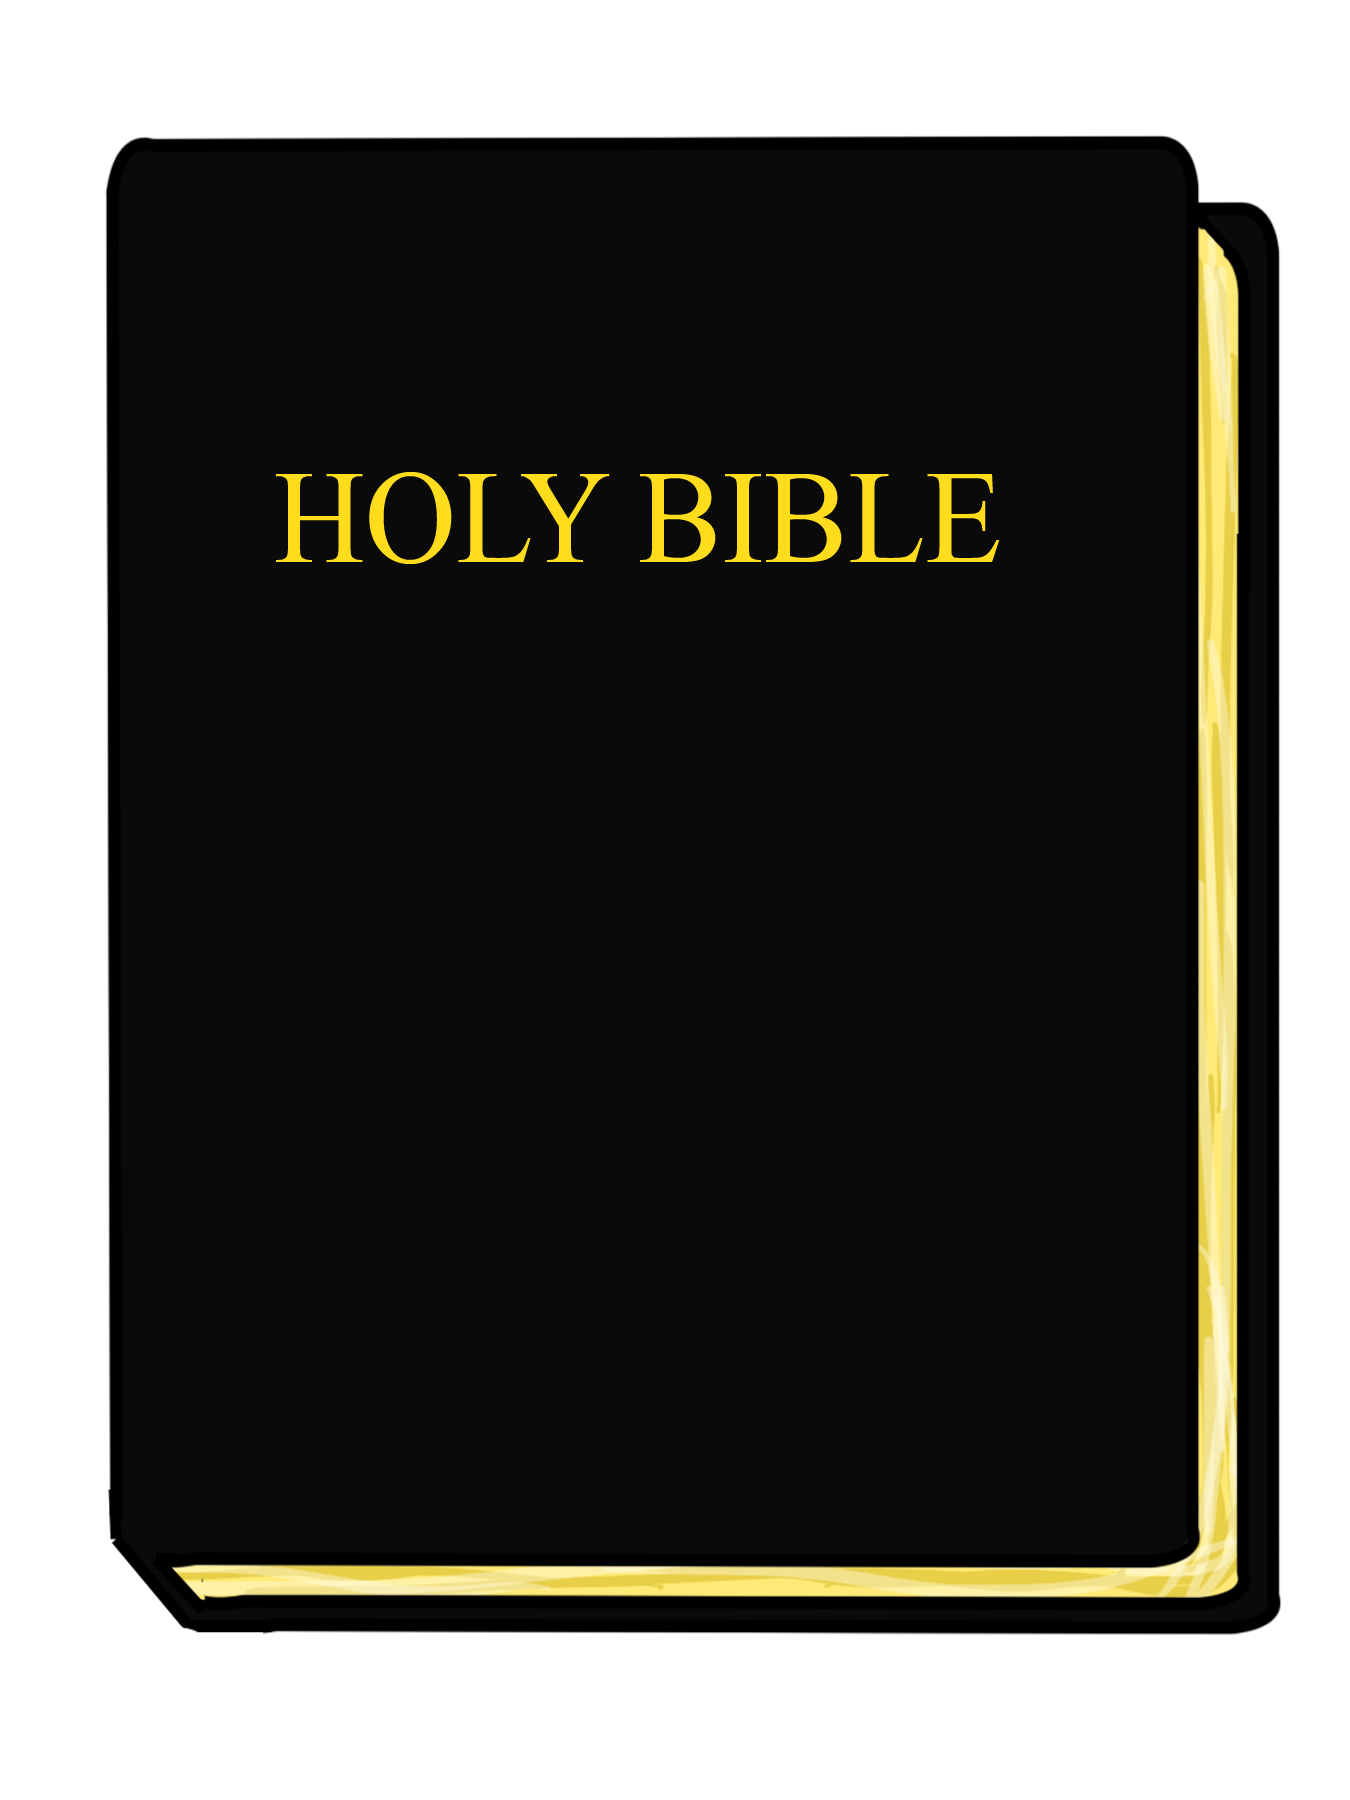 collection of high. Bible clipart transparent background